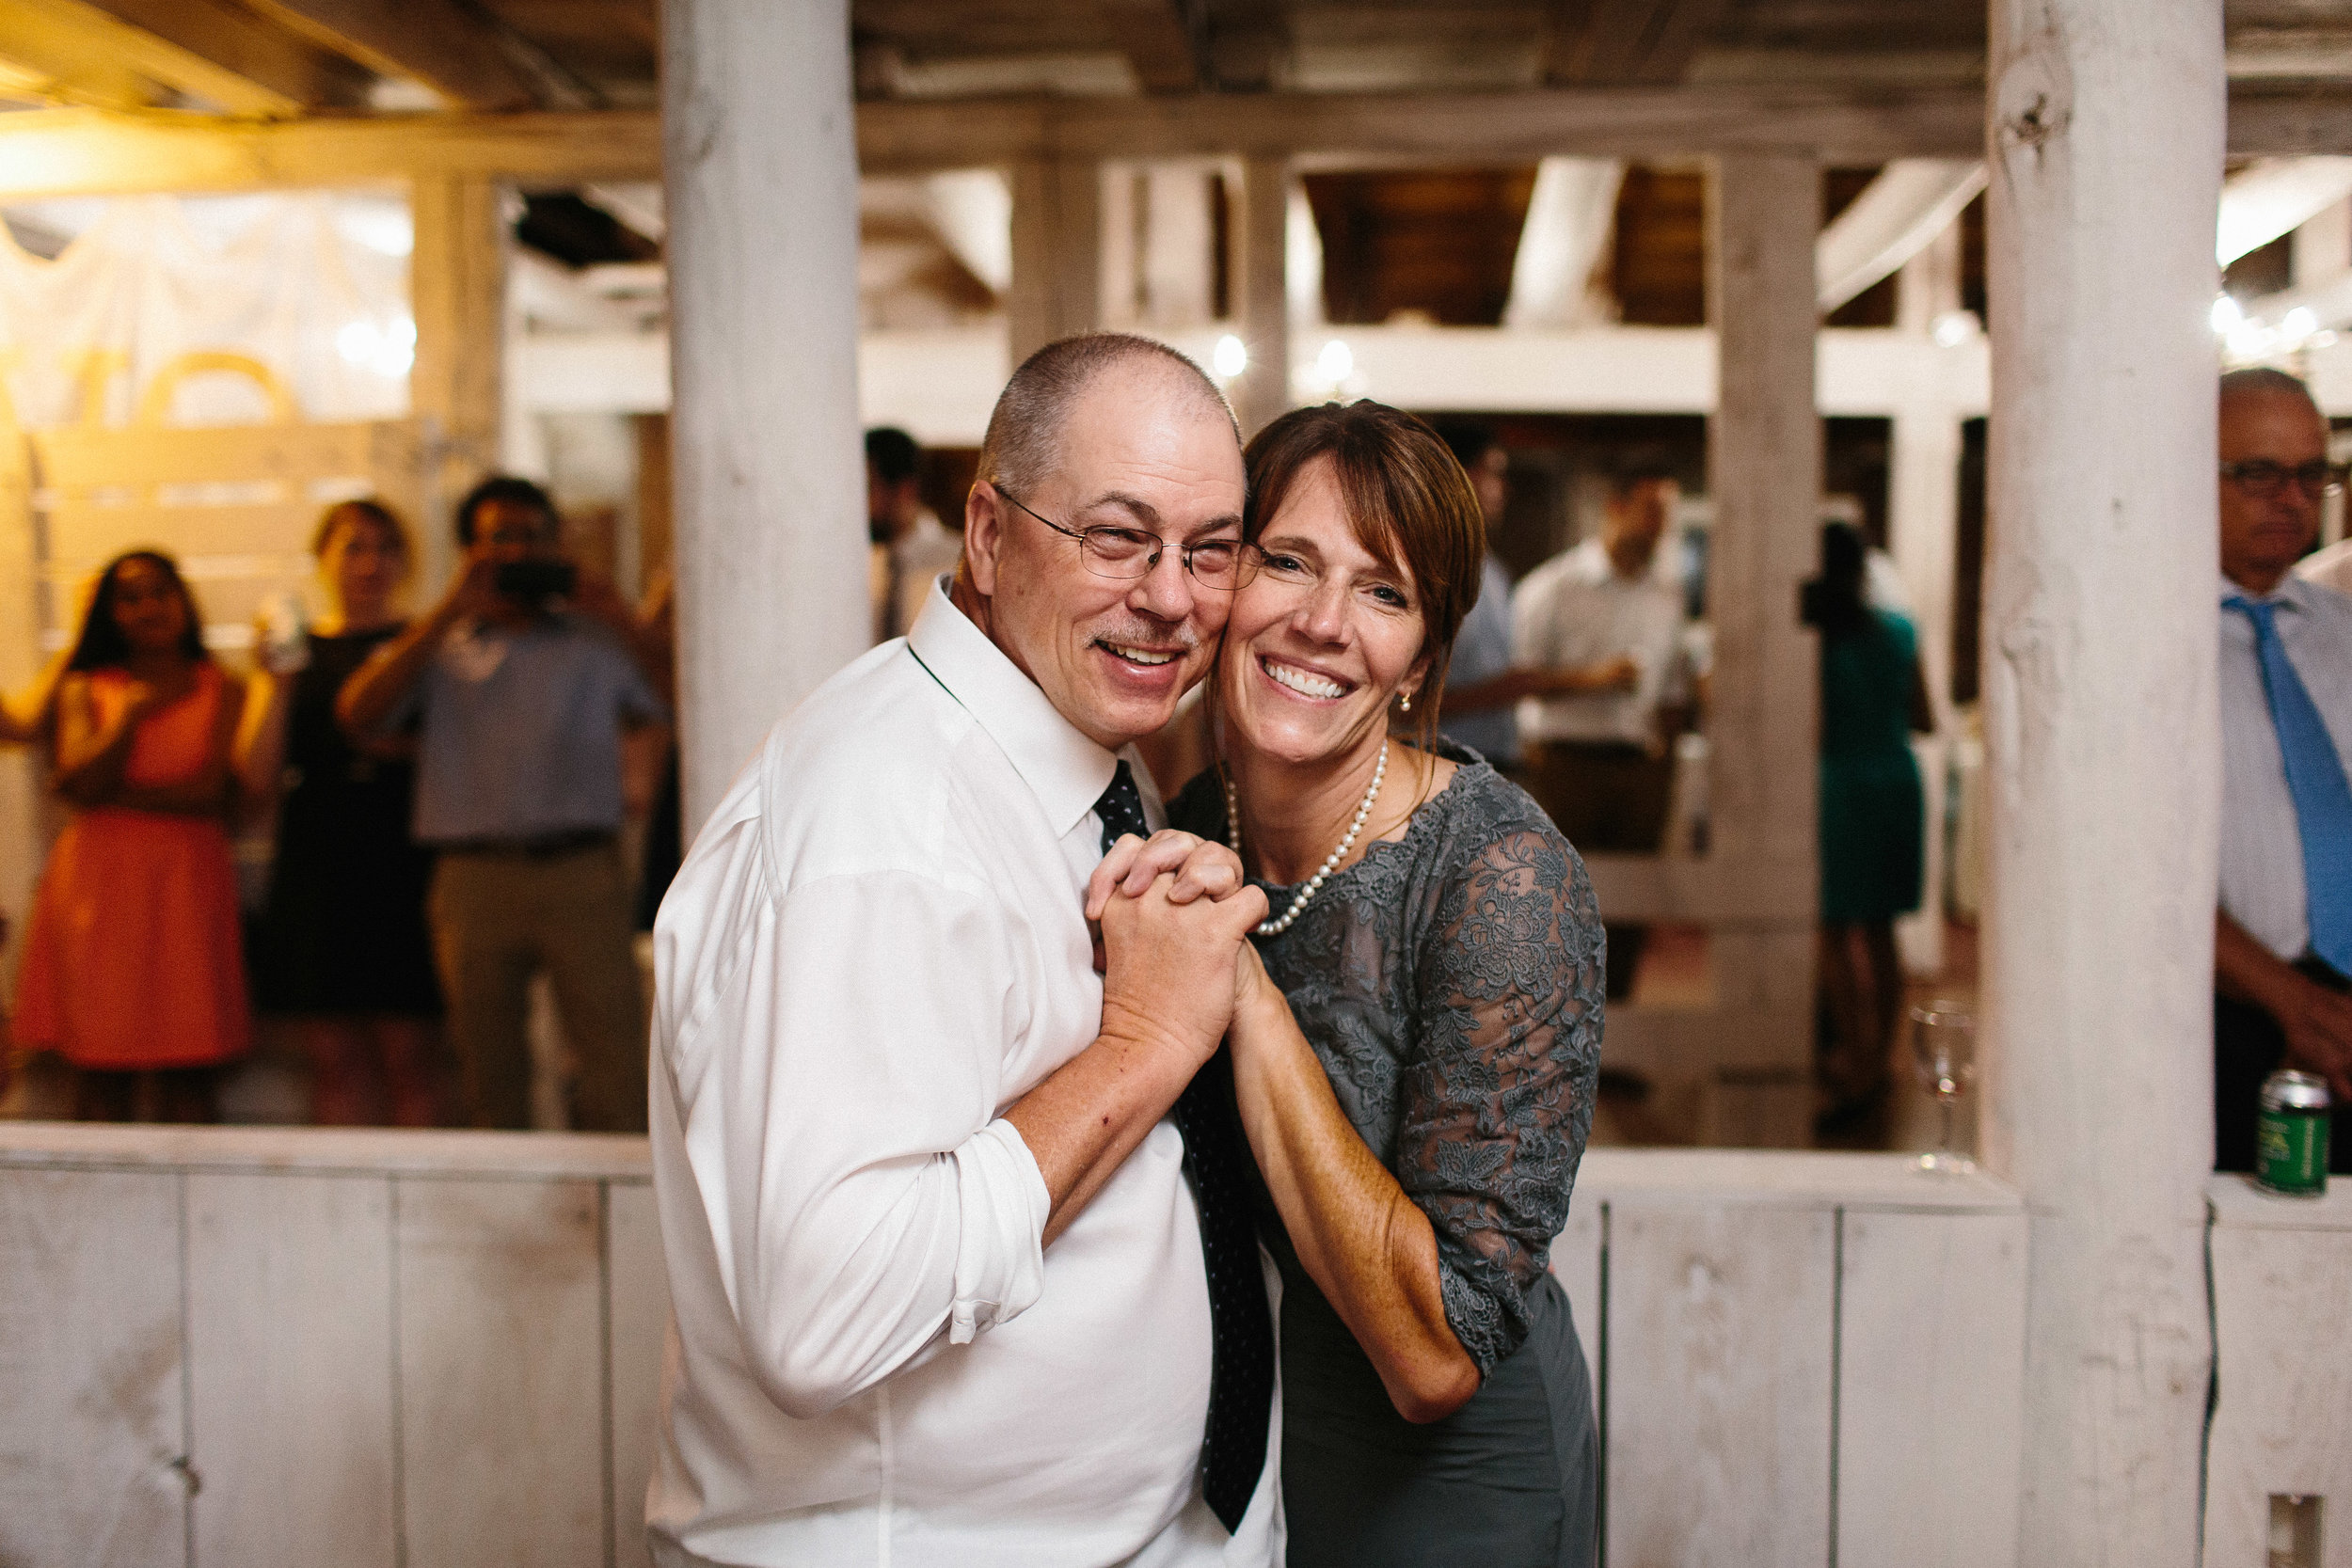 cleveland_georgia_mountain_laurel_farm_natural_classic_timeless_documentary_candid_wedding_emotional_photojournalism_river_west_2038.jpg